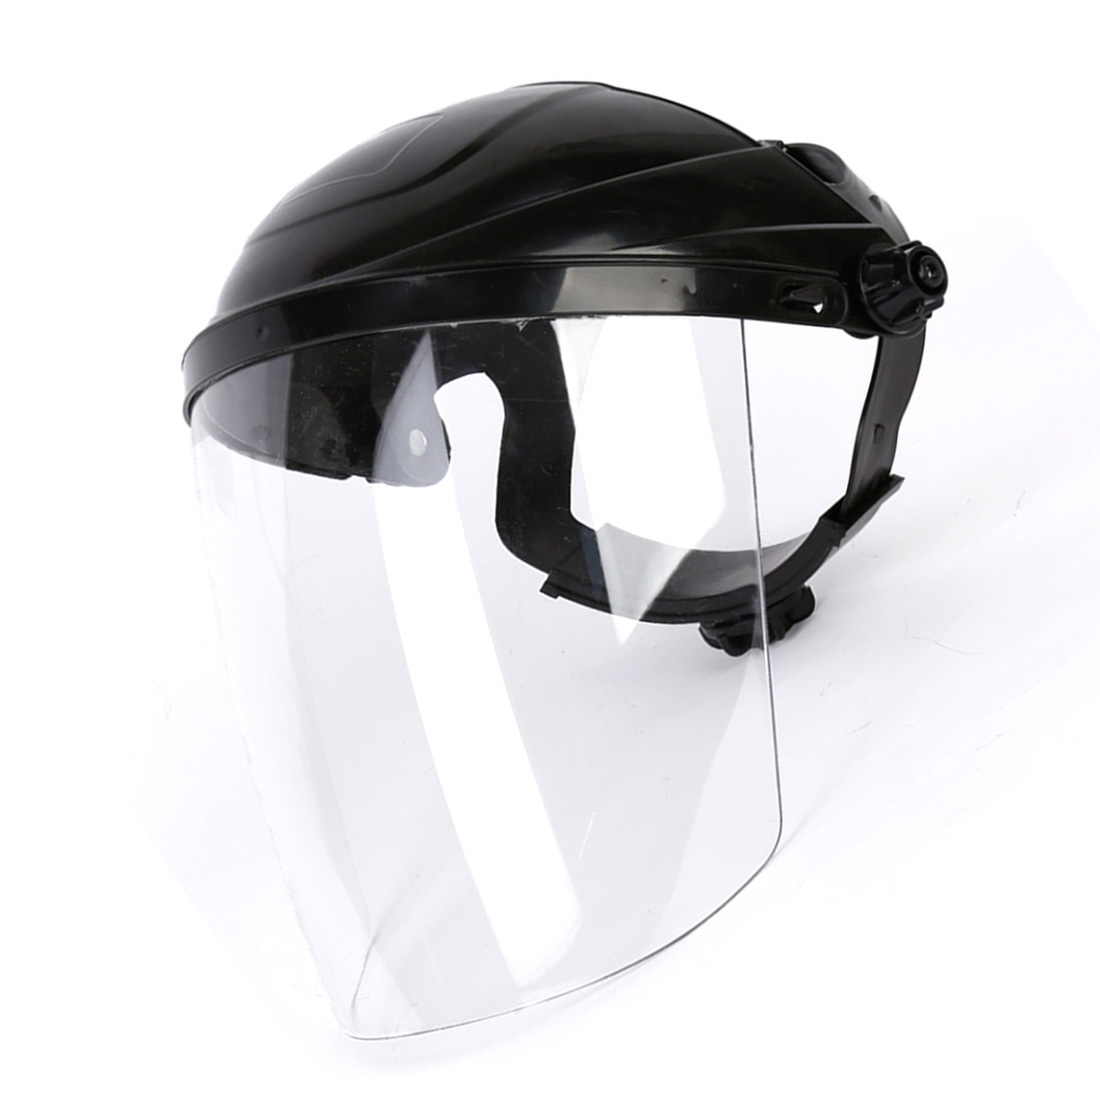 Full Face Protect Anti Saliva Protective Face Shield Clear Visor Flip Up Transparent Mask Anti Splash Full Face Cover